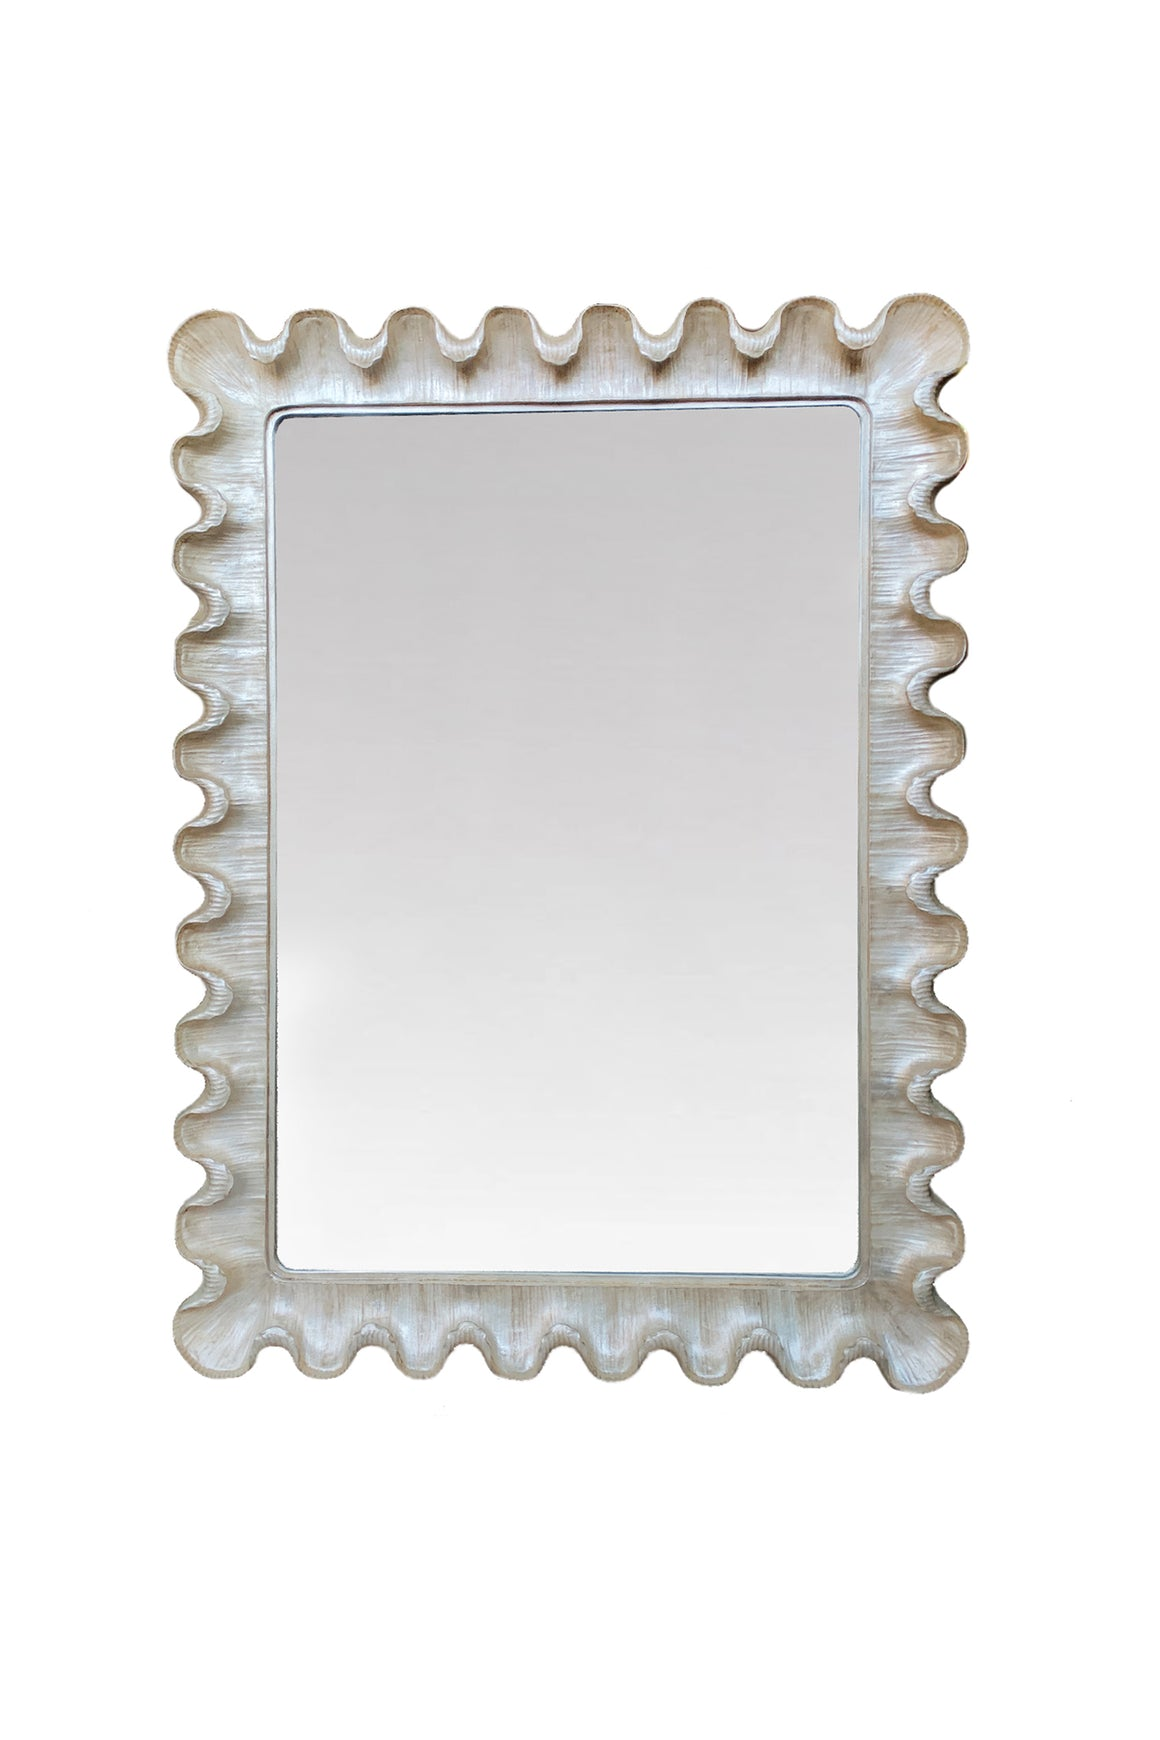 20th Century Hollywood Regency Style Wall Mirror